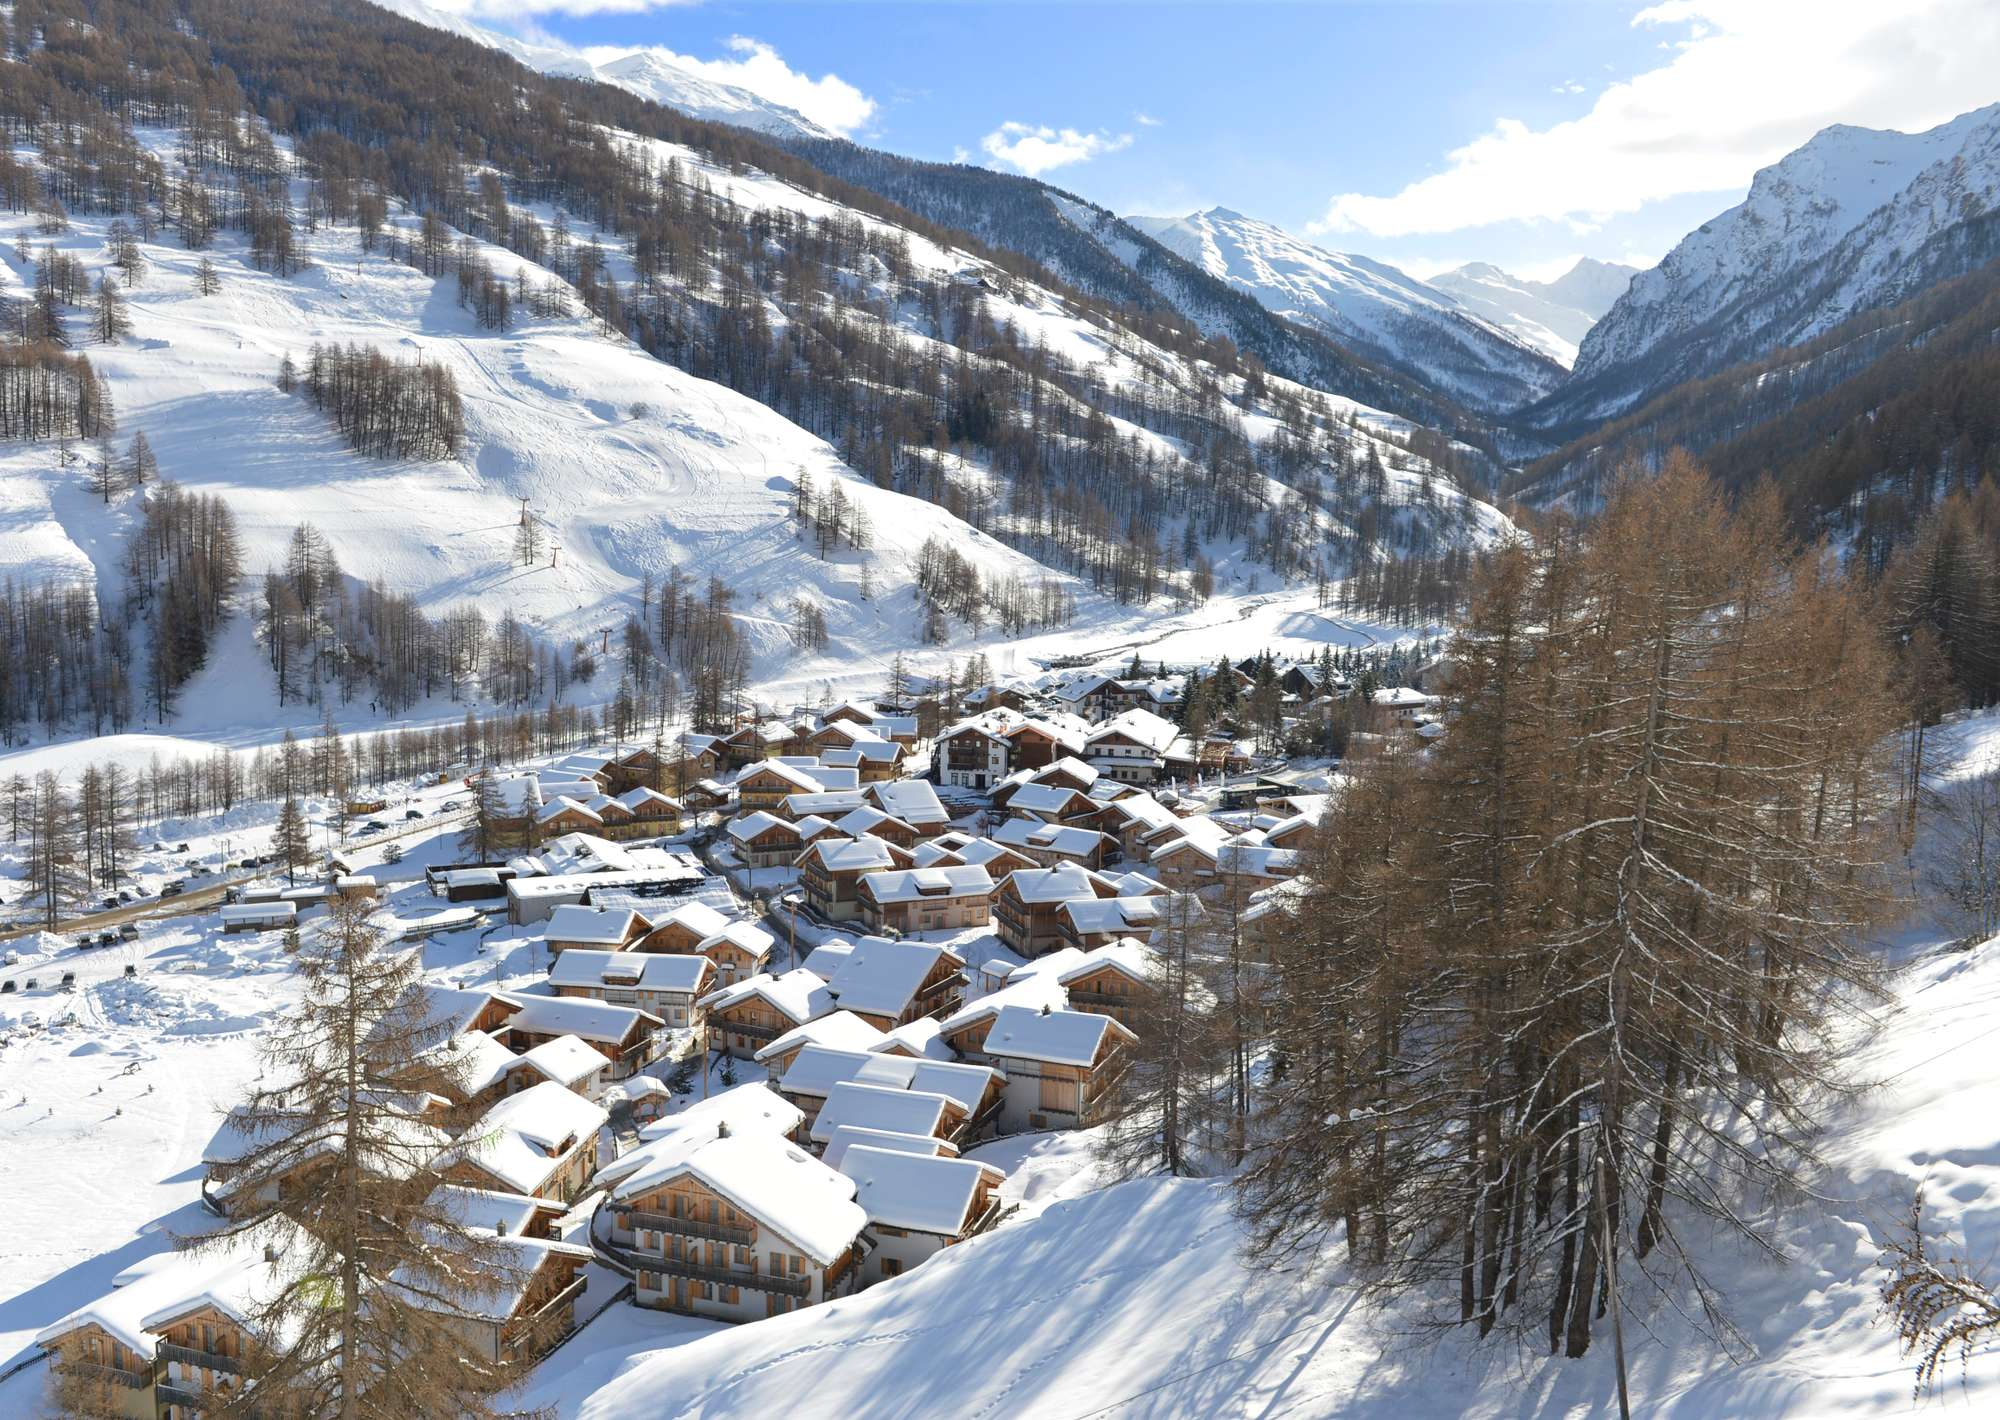 Https  ns.clubmed.com icp 1 media 01.villages 1.3montagne pragelato vialattea 45 photos pracl112010